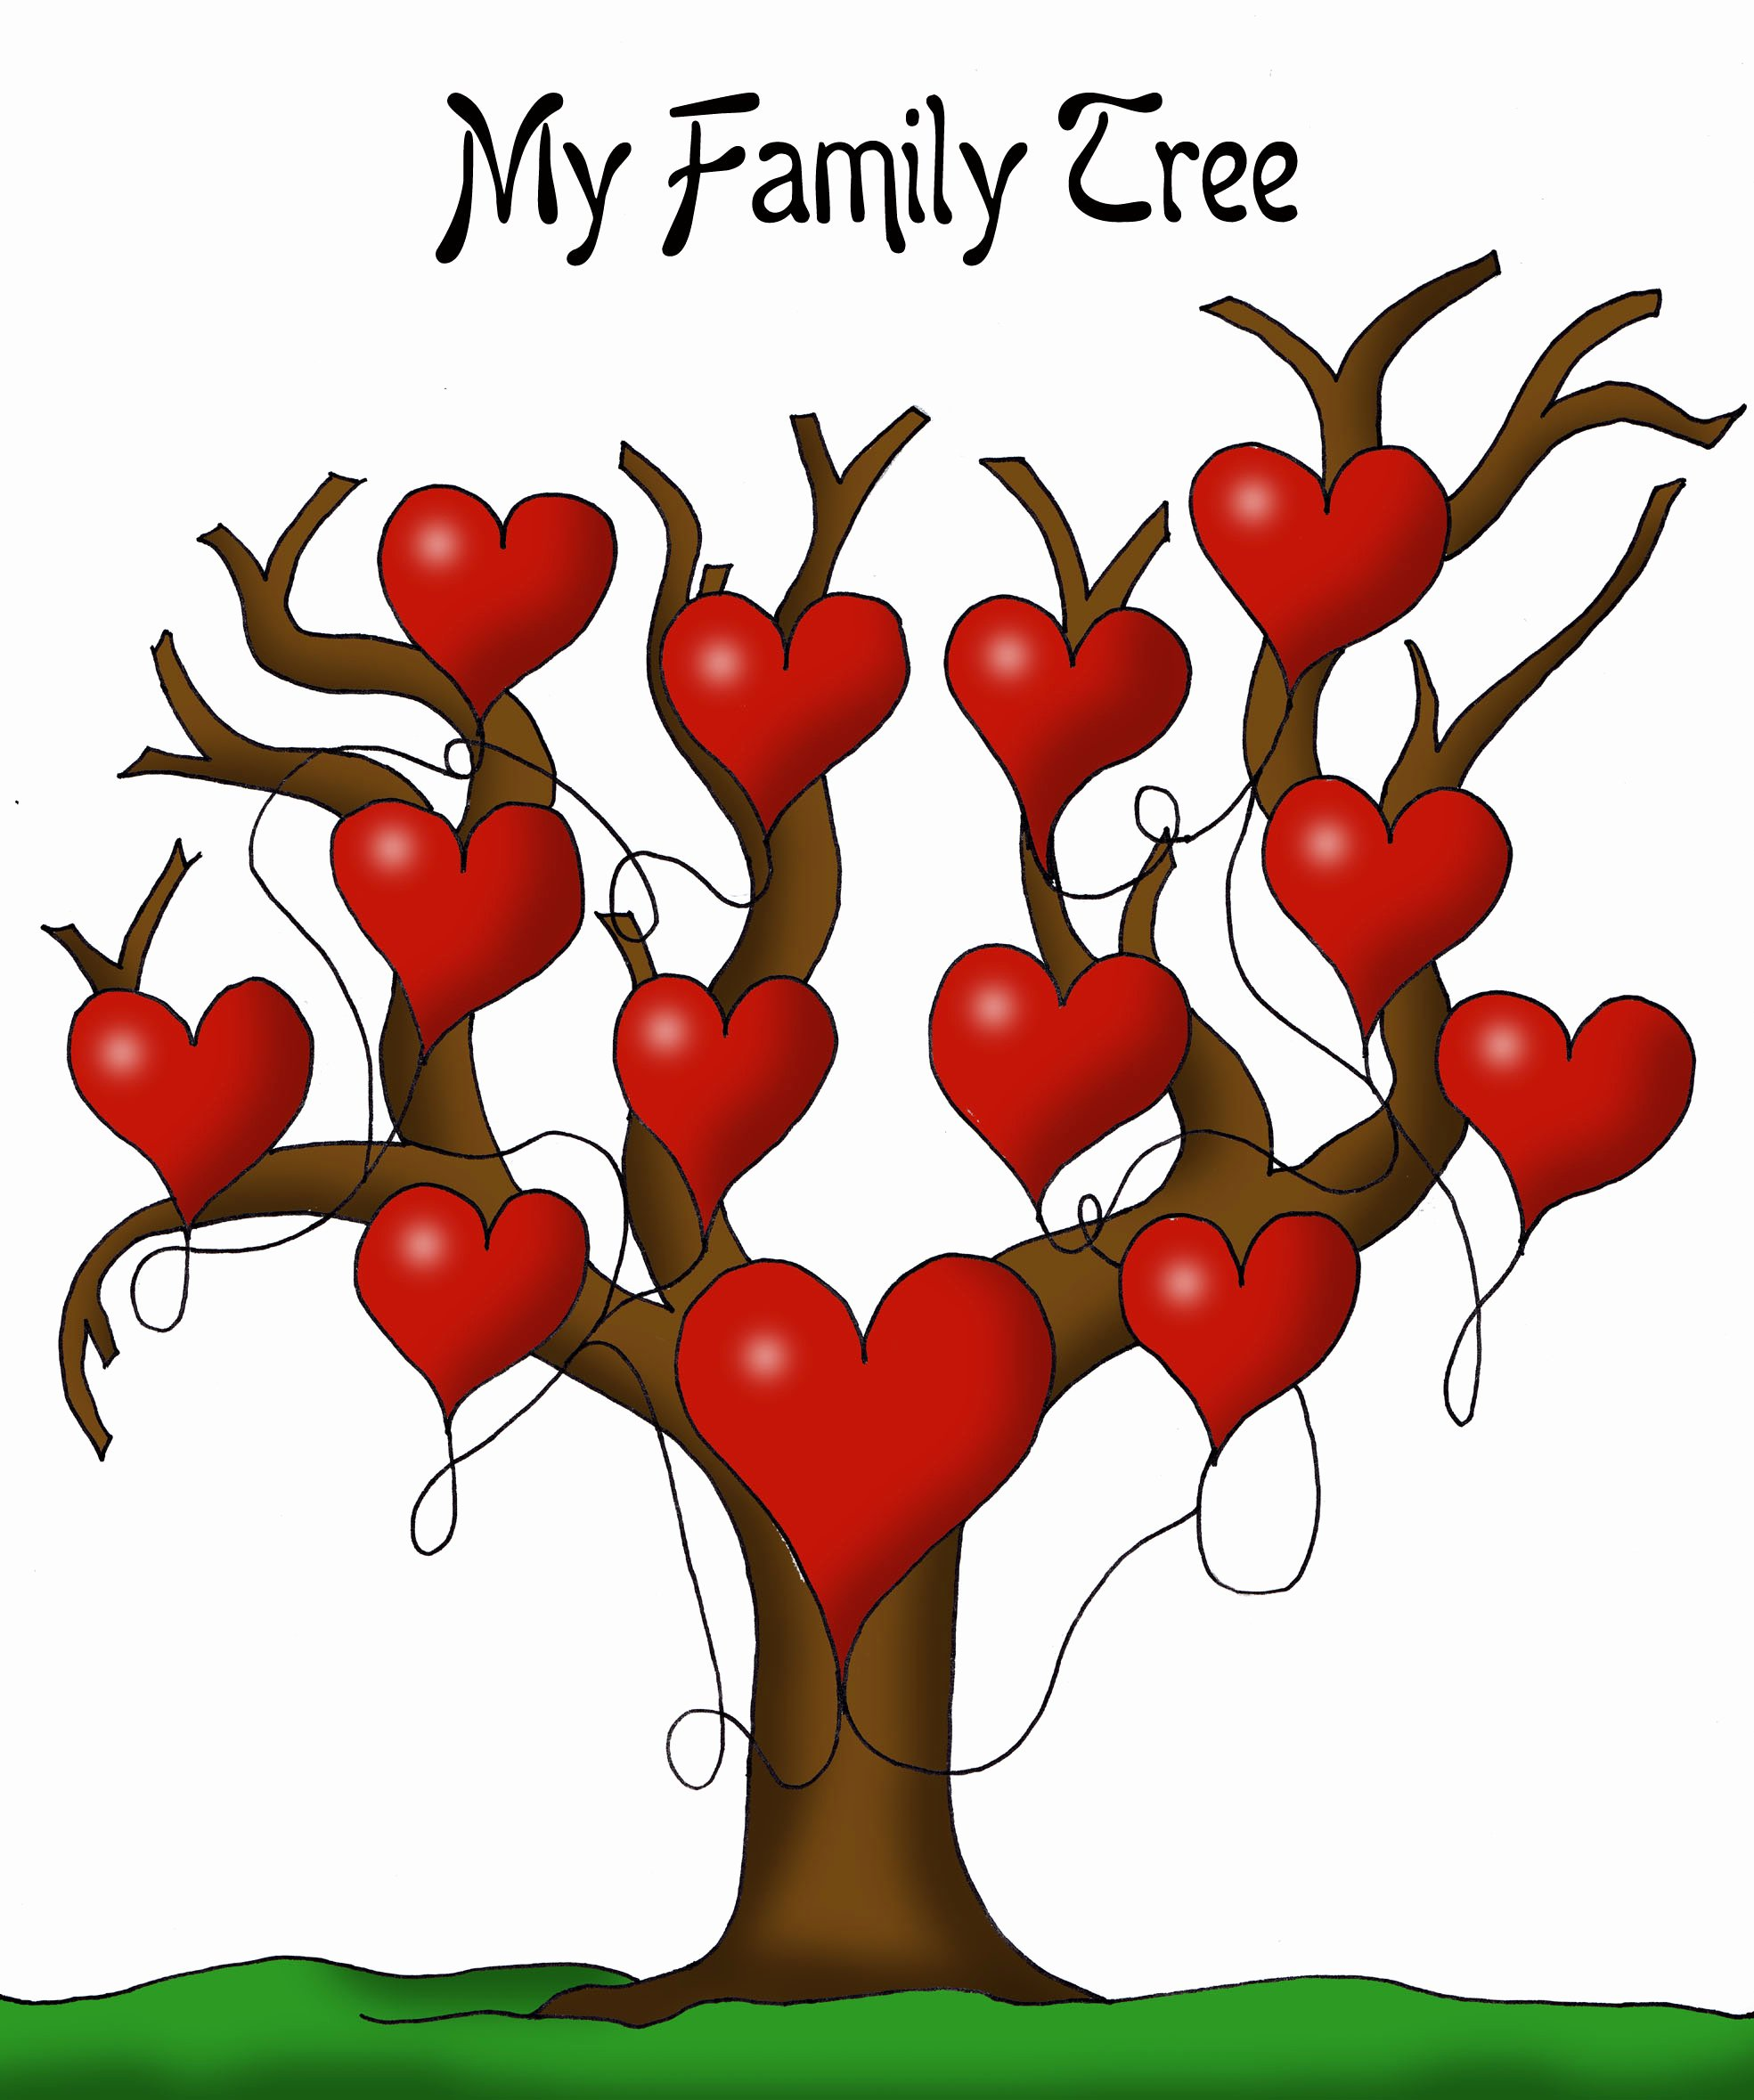 Family Tree Images to Print Best Of A Printable Blank Family Tree to Make Your Kids Genealogy